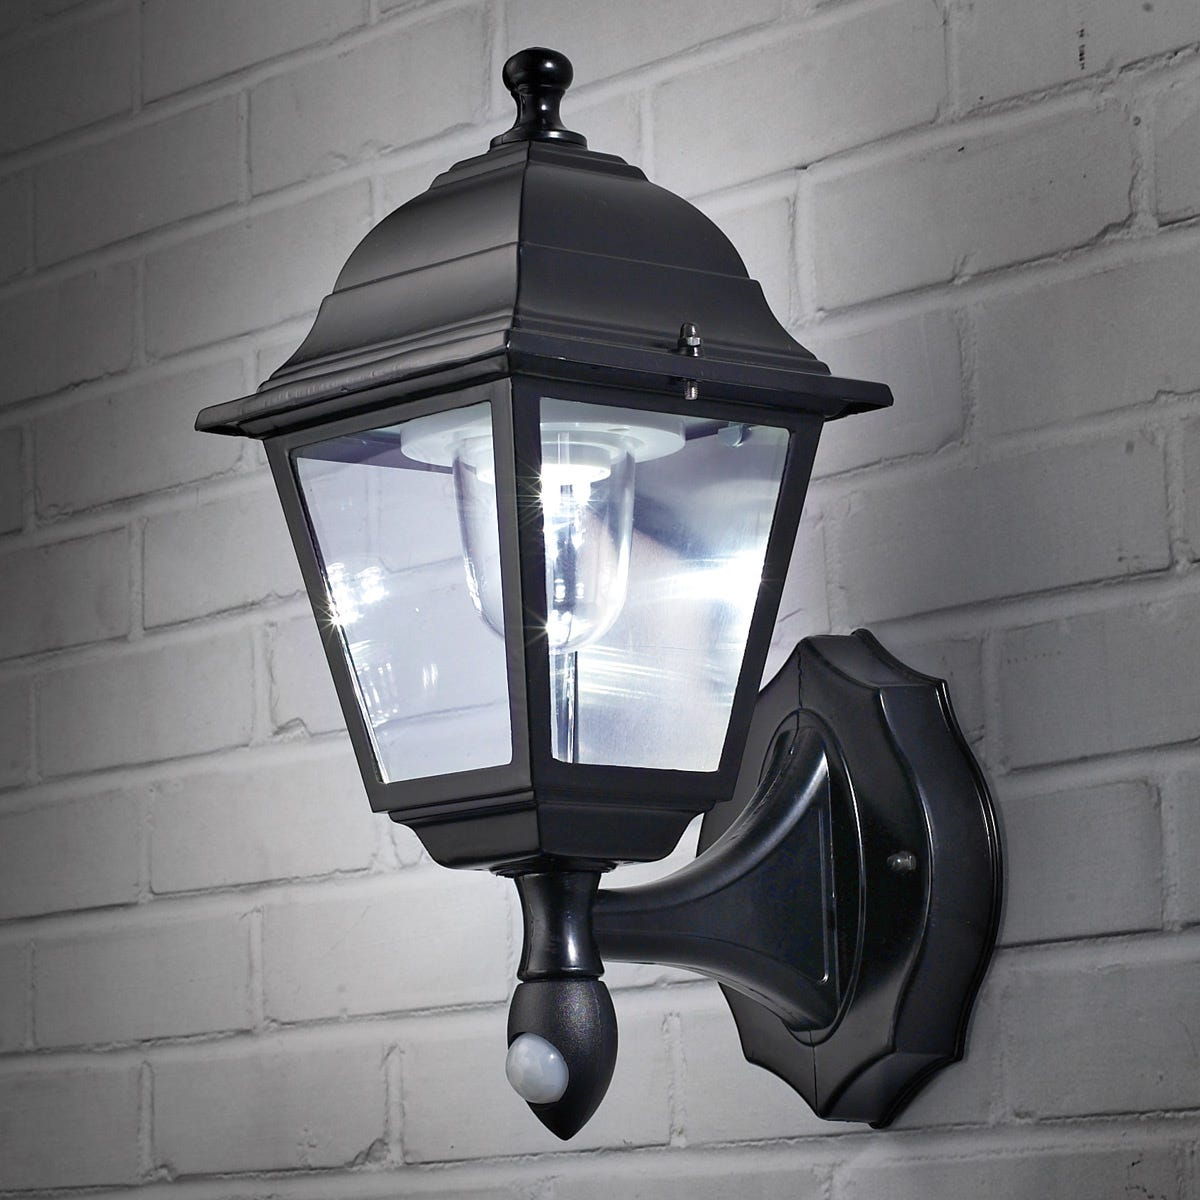 Wireless Motion-Activated Outdoor Wall Sconce - from Sportys Preferred Living